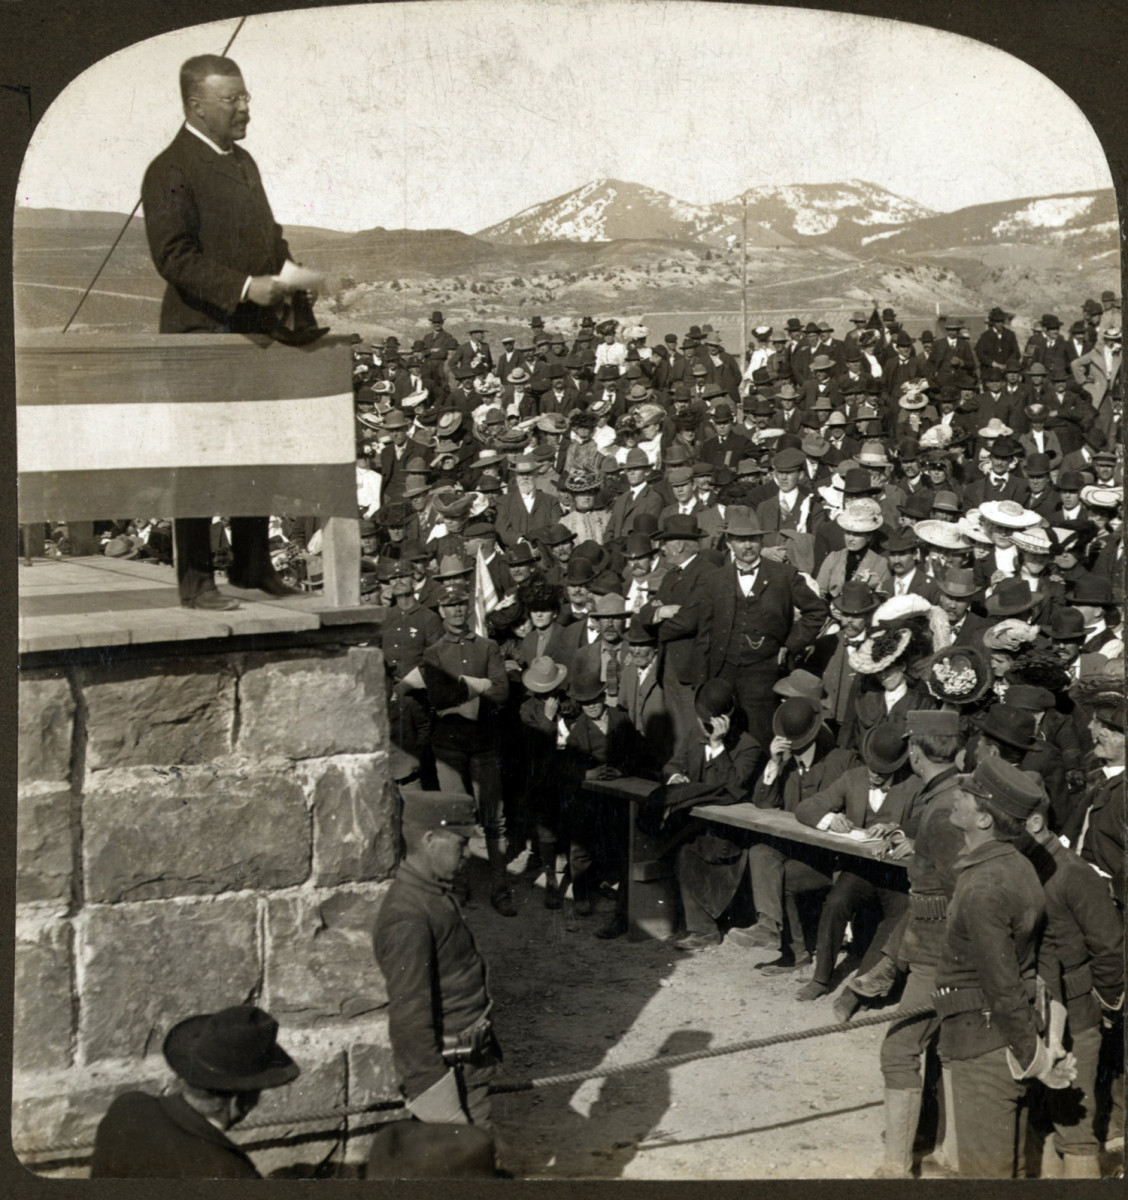 President Theodore Roosevelt's western tour, a speech at the entrance to Yellowstone National Park, 1903.